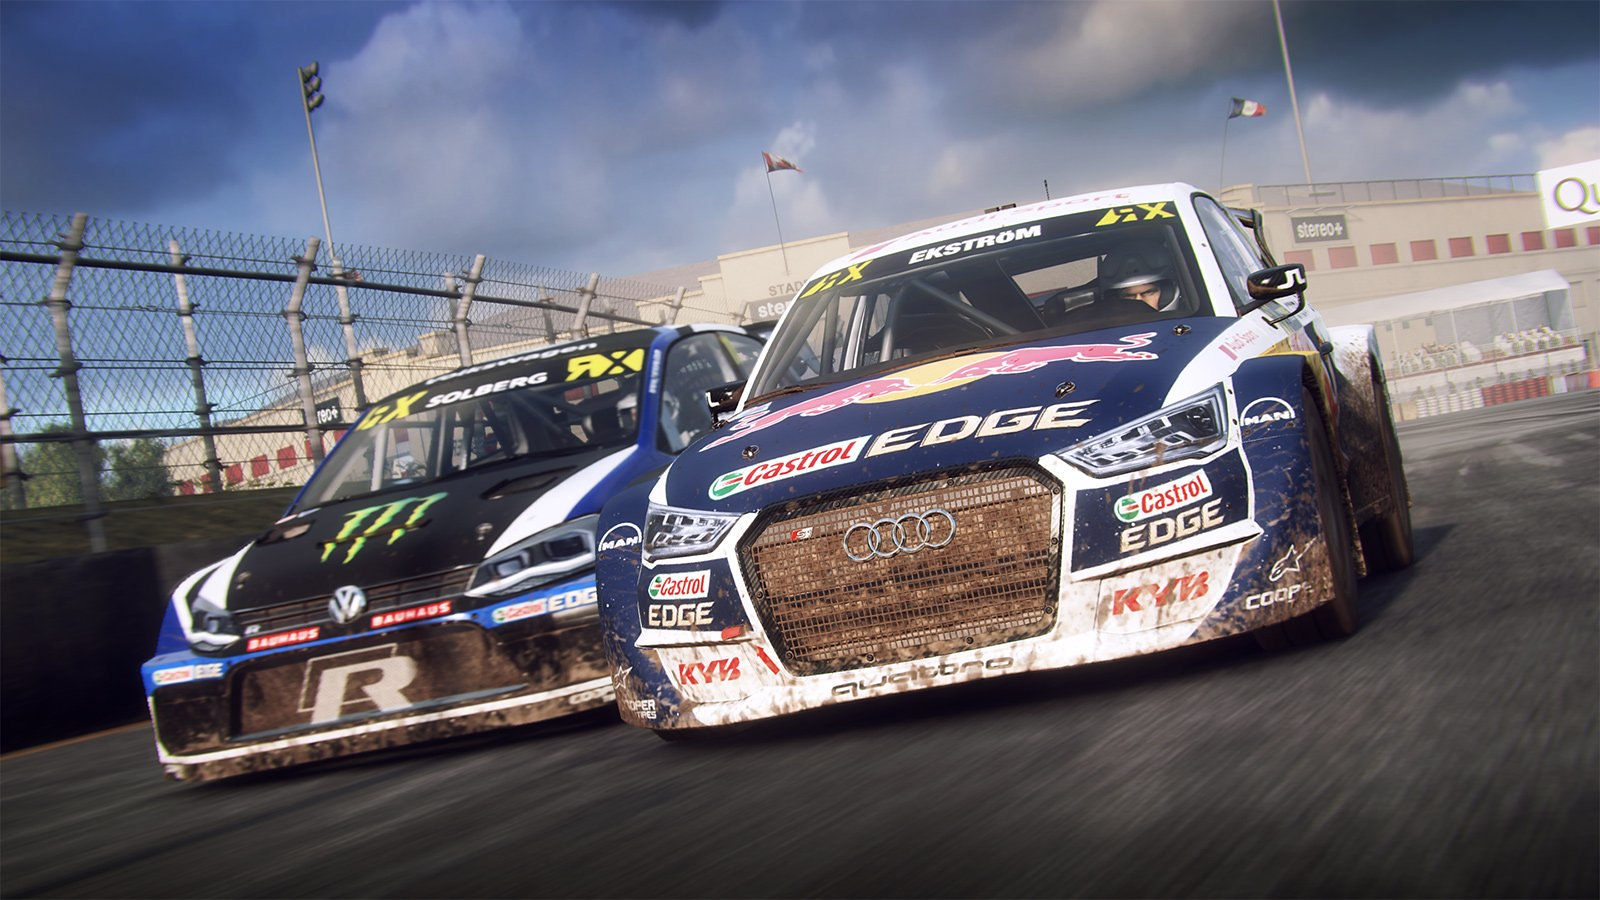 DiRT-Rally-2.0-preview-3